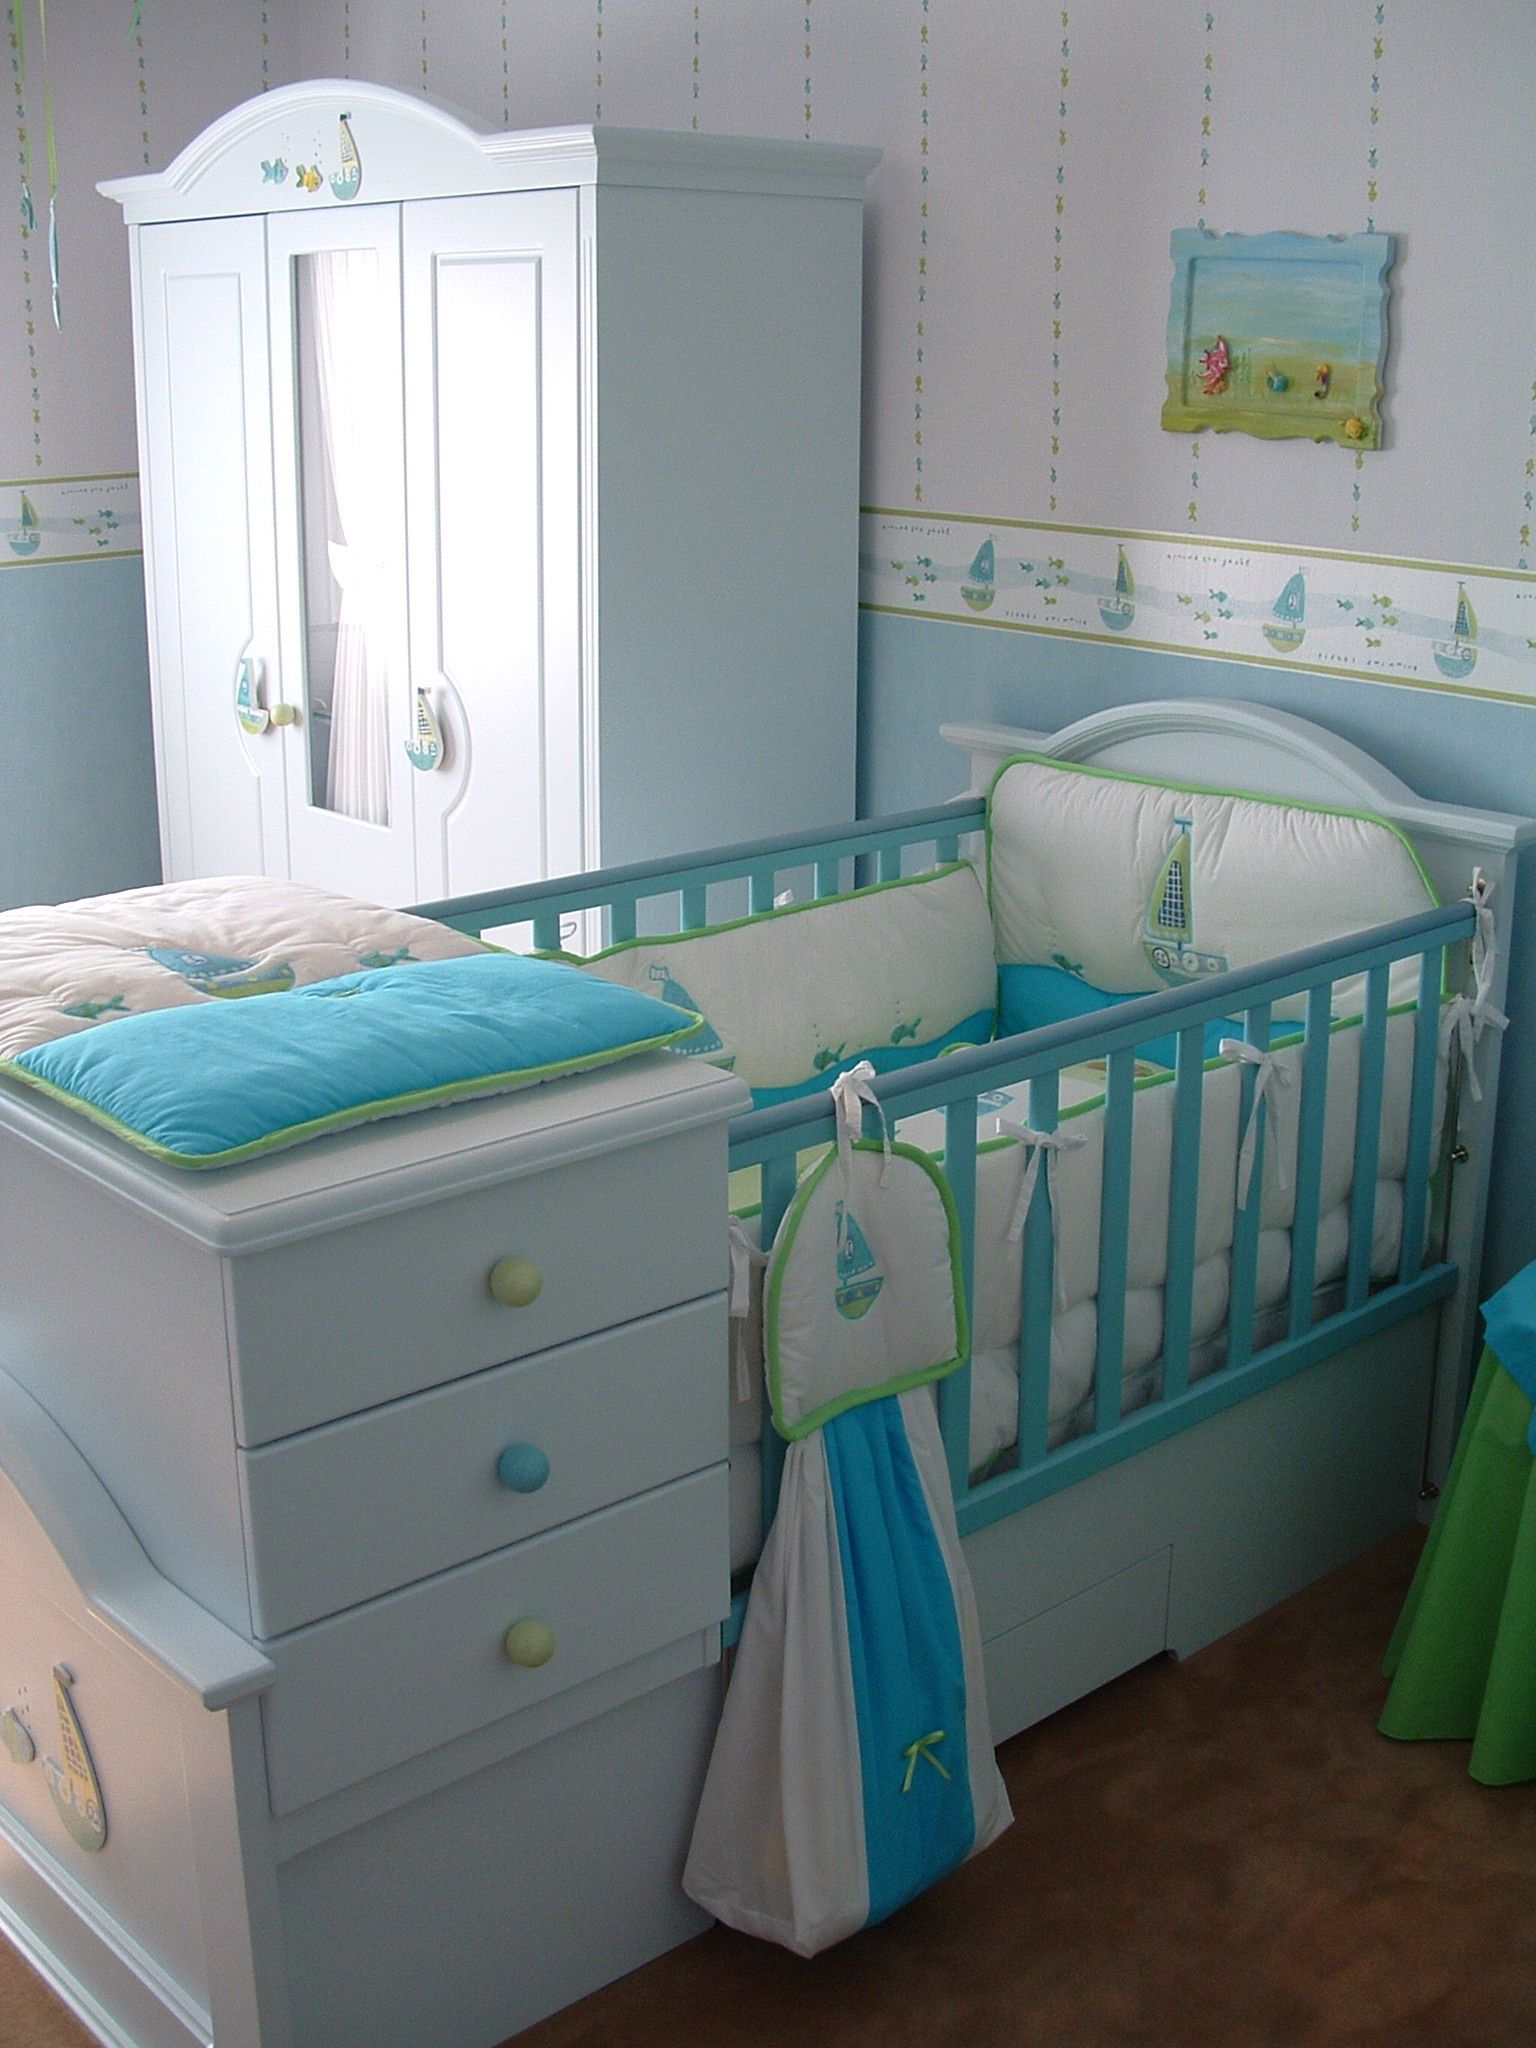 683e1d96a best New Baby Boy Things image collection